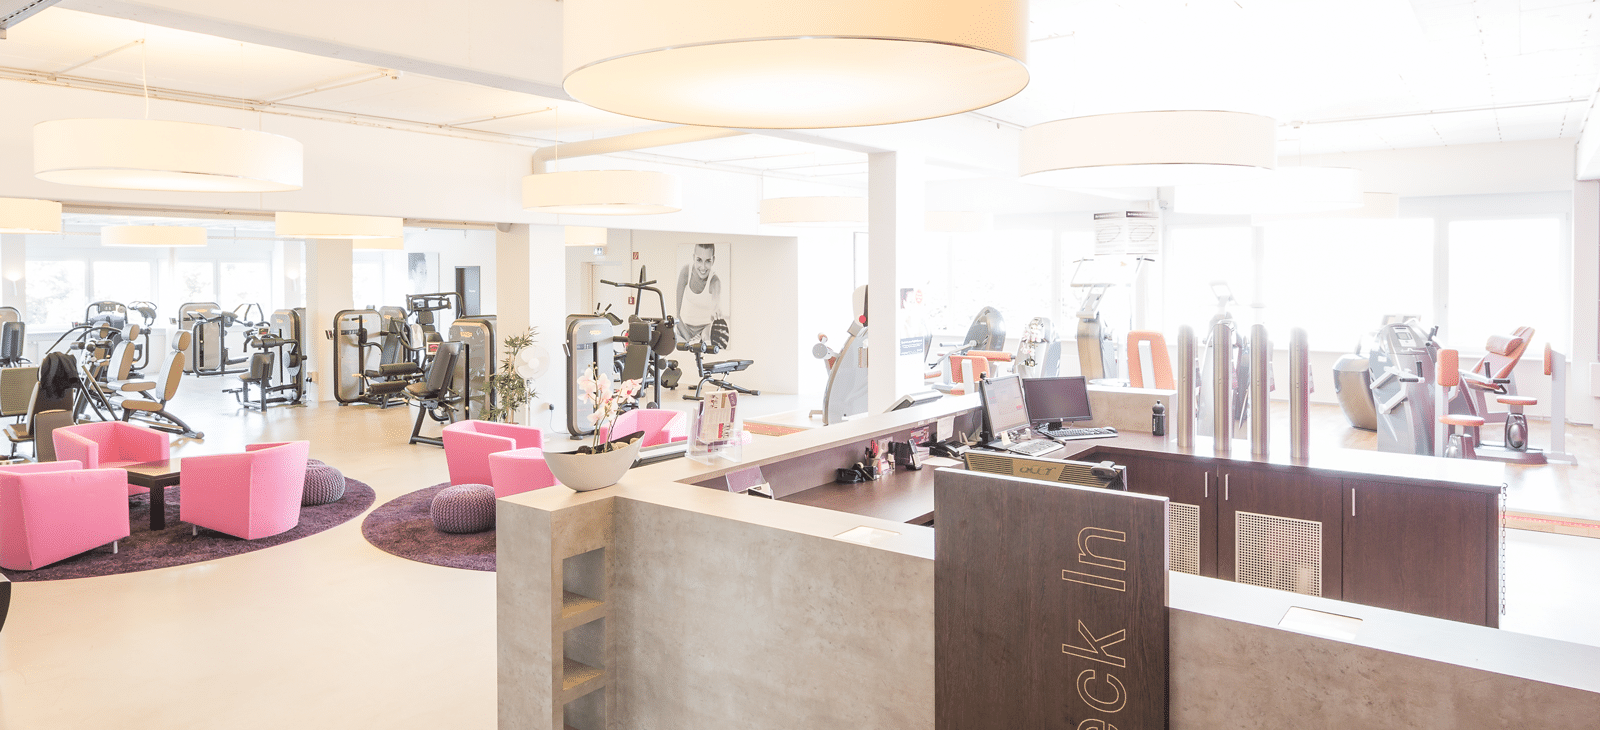 Fitness-Loft Woman Freiburg an der Rezeption